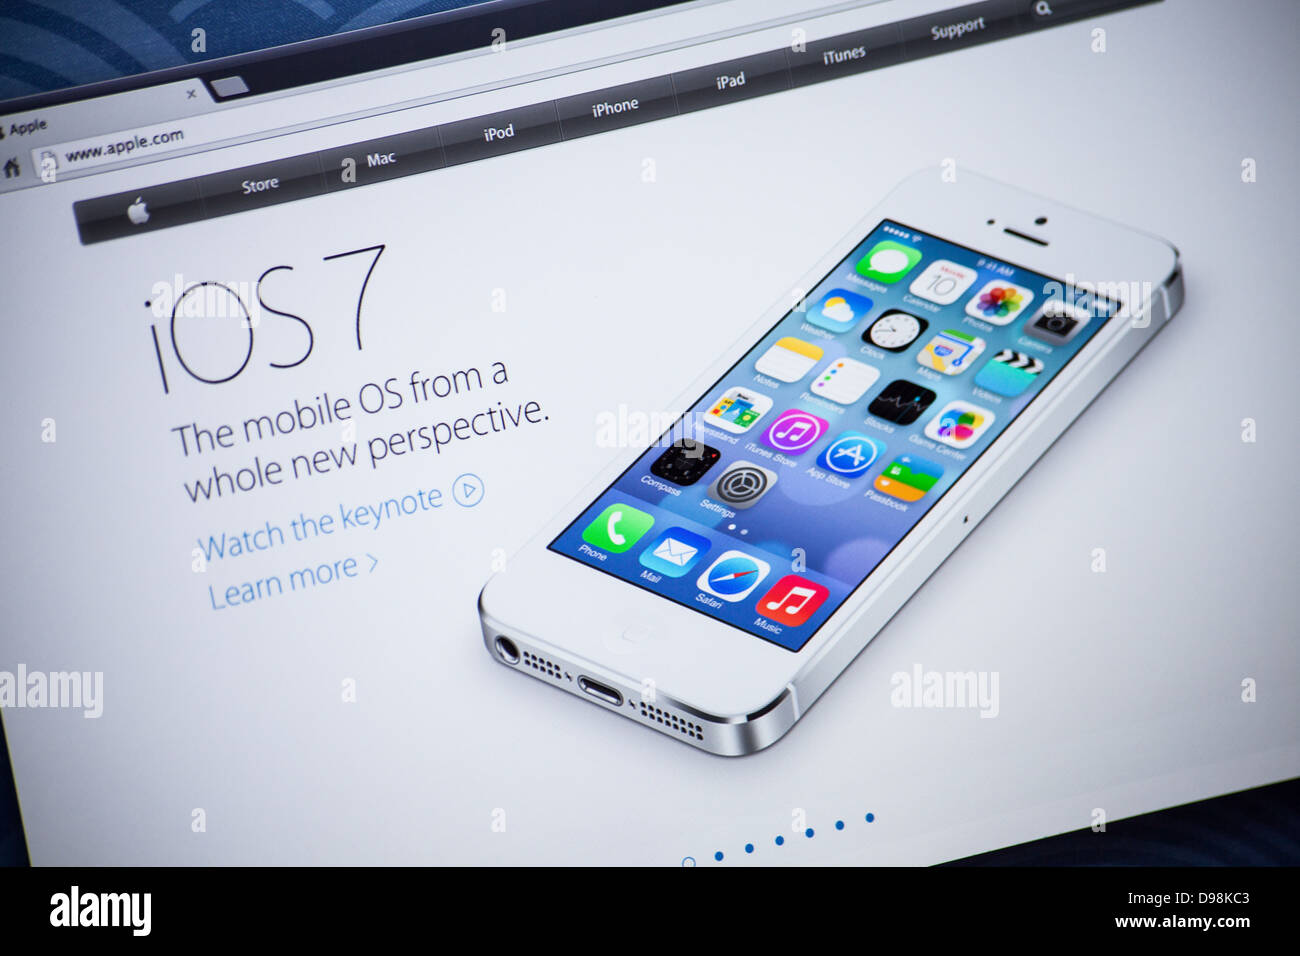 Apple website screenshot with iOS 7 presentation page - Stock Image